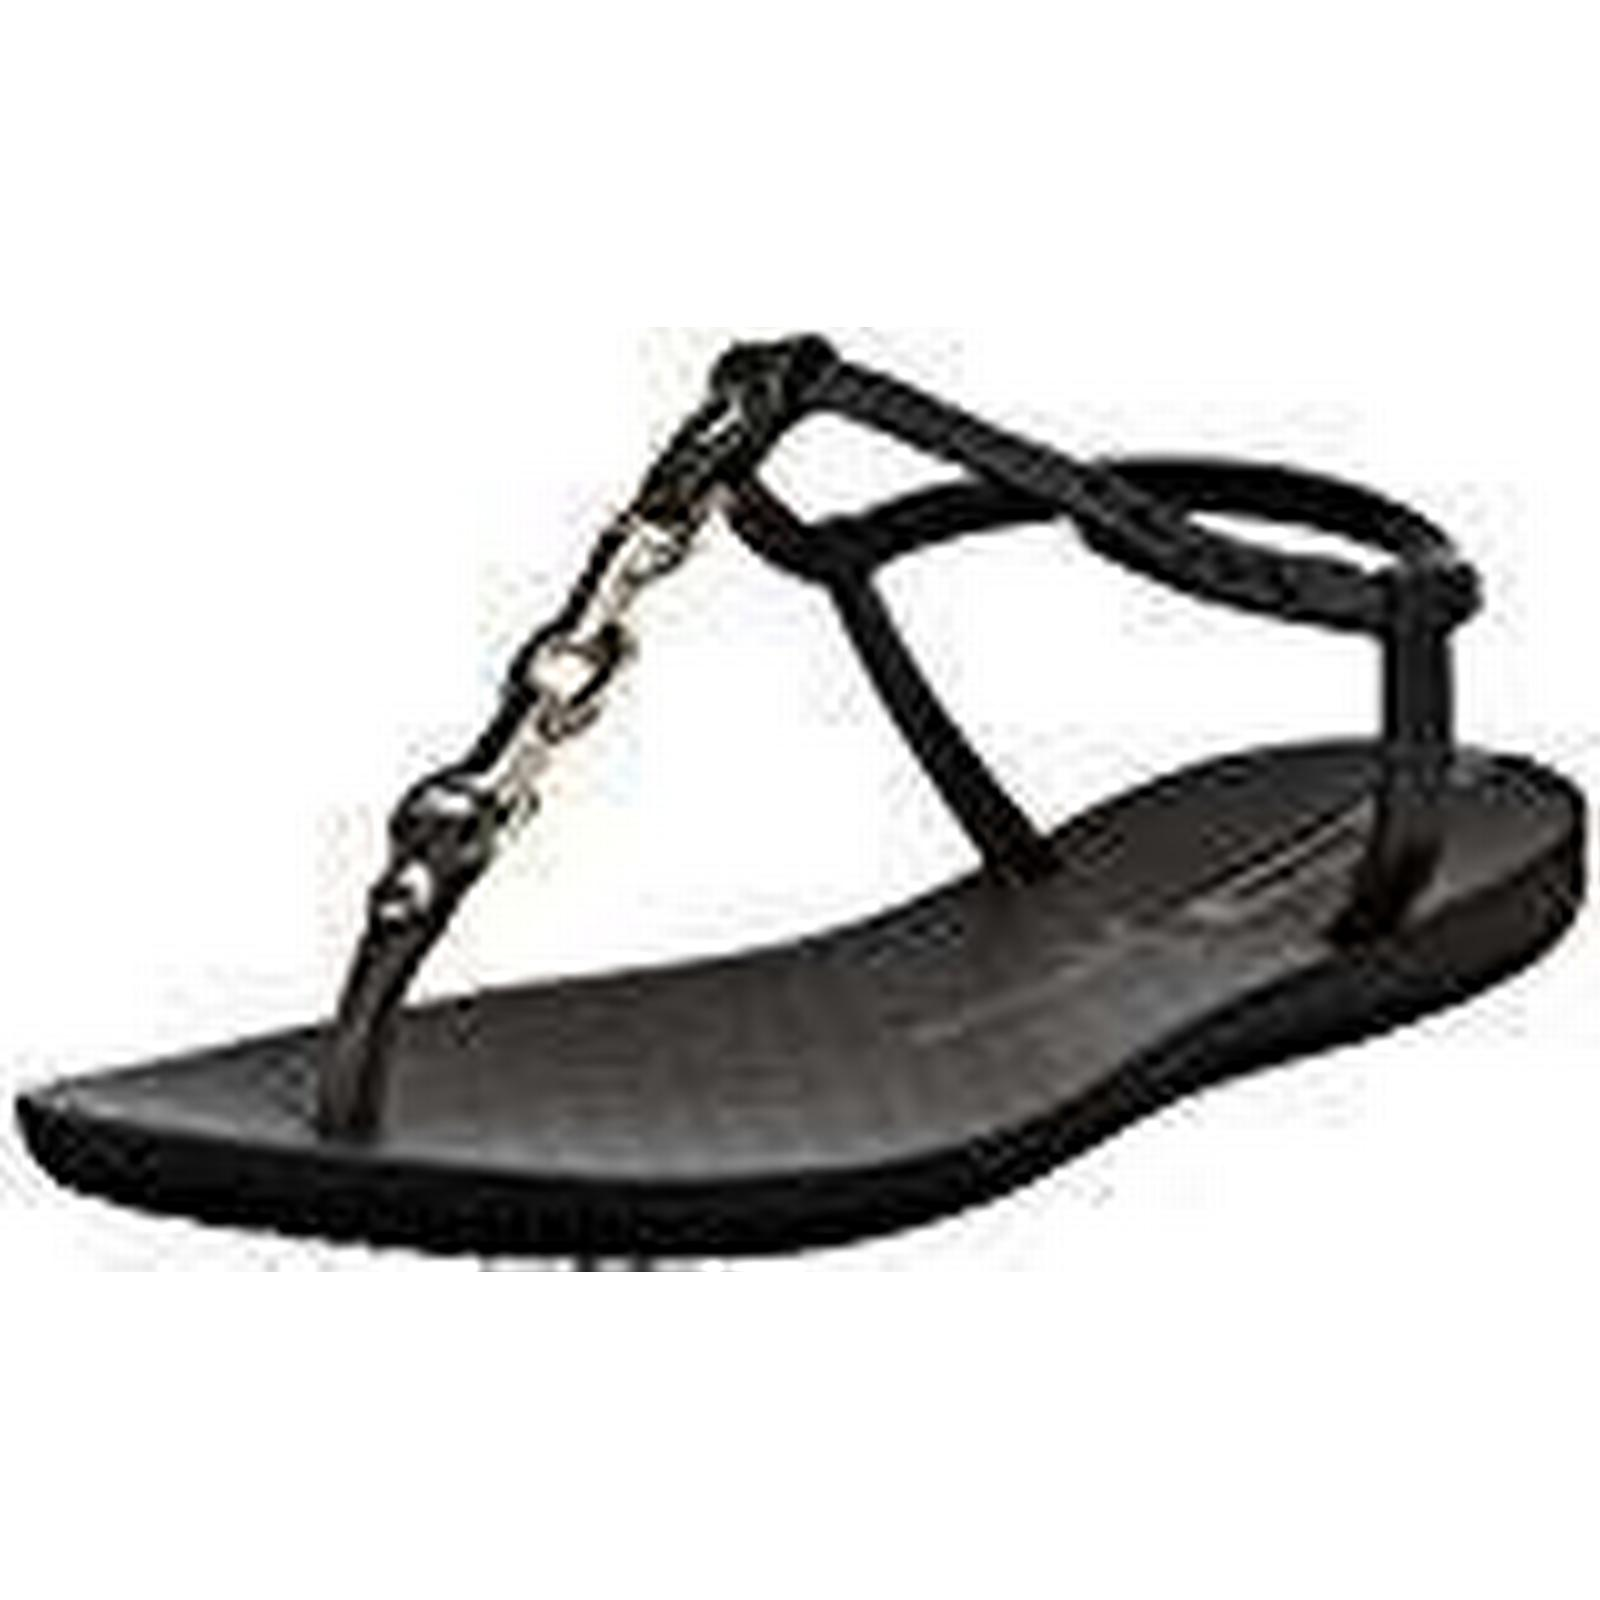 Ipanema Women's Sandals, Lenny Unity FEM T-Bar Sandals, Women's (Black 8680), 6 UK 6 UK 310977